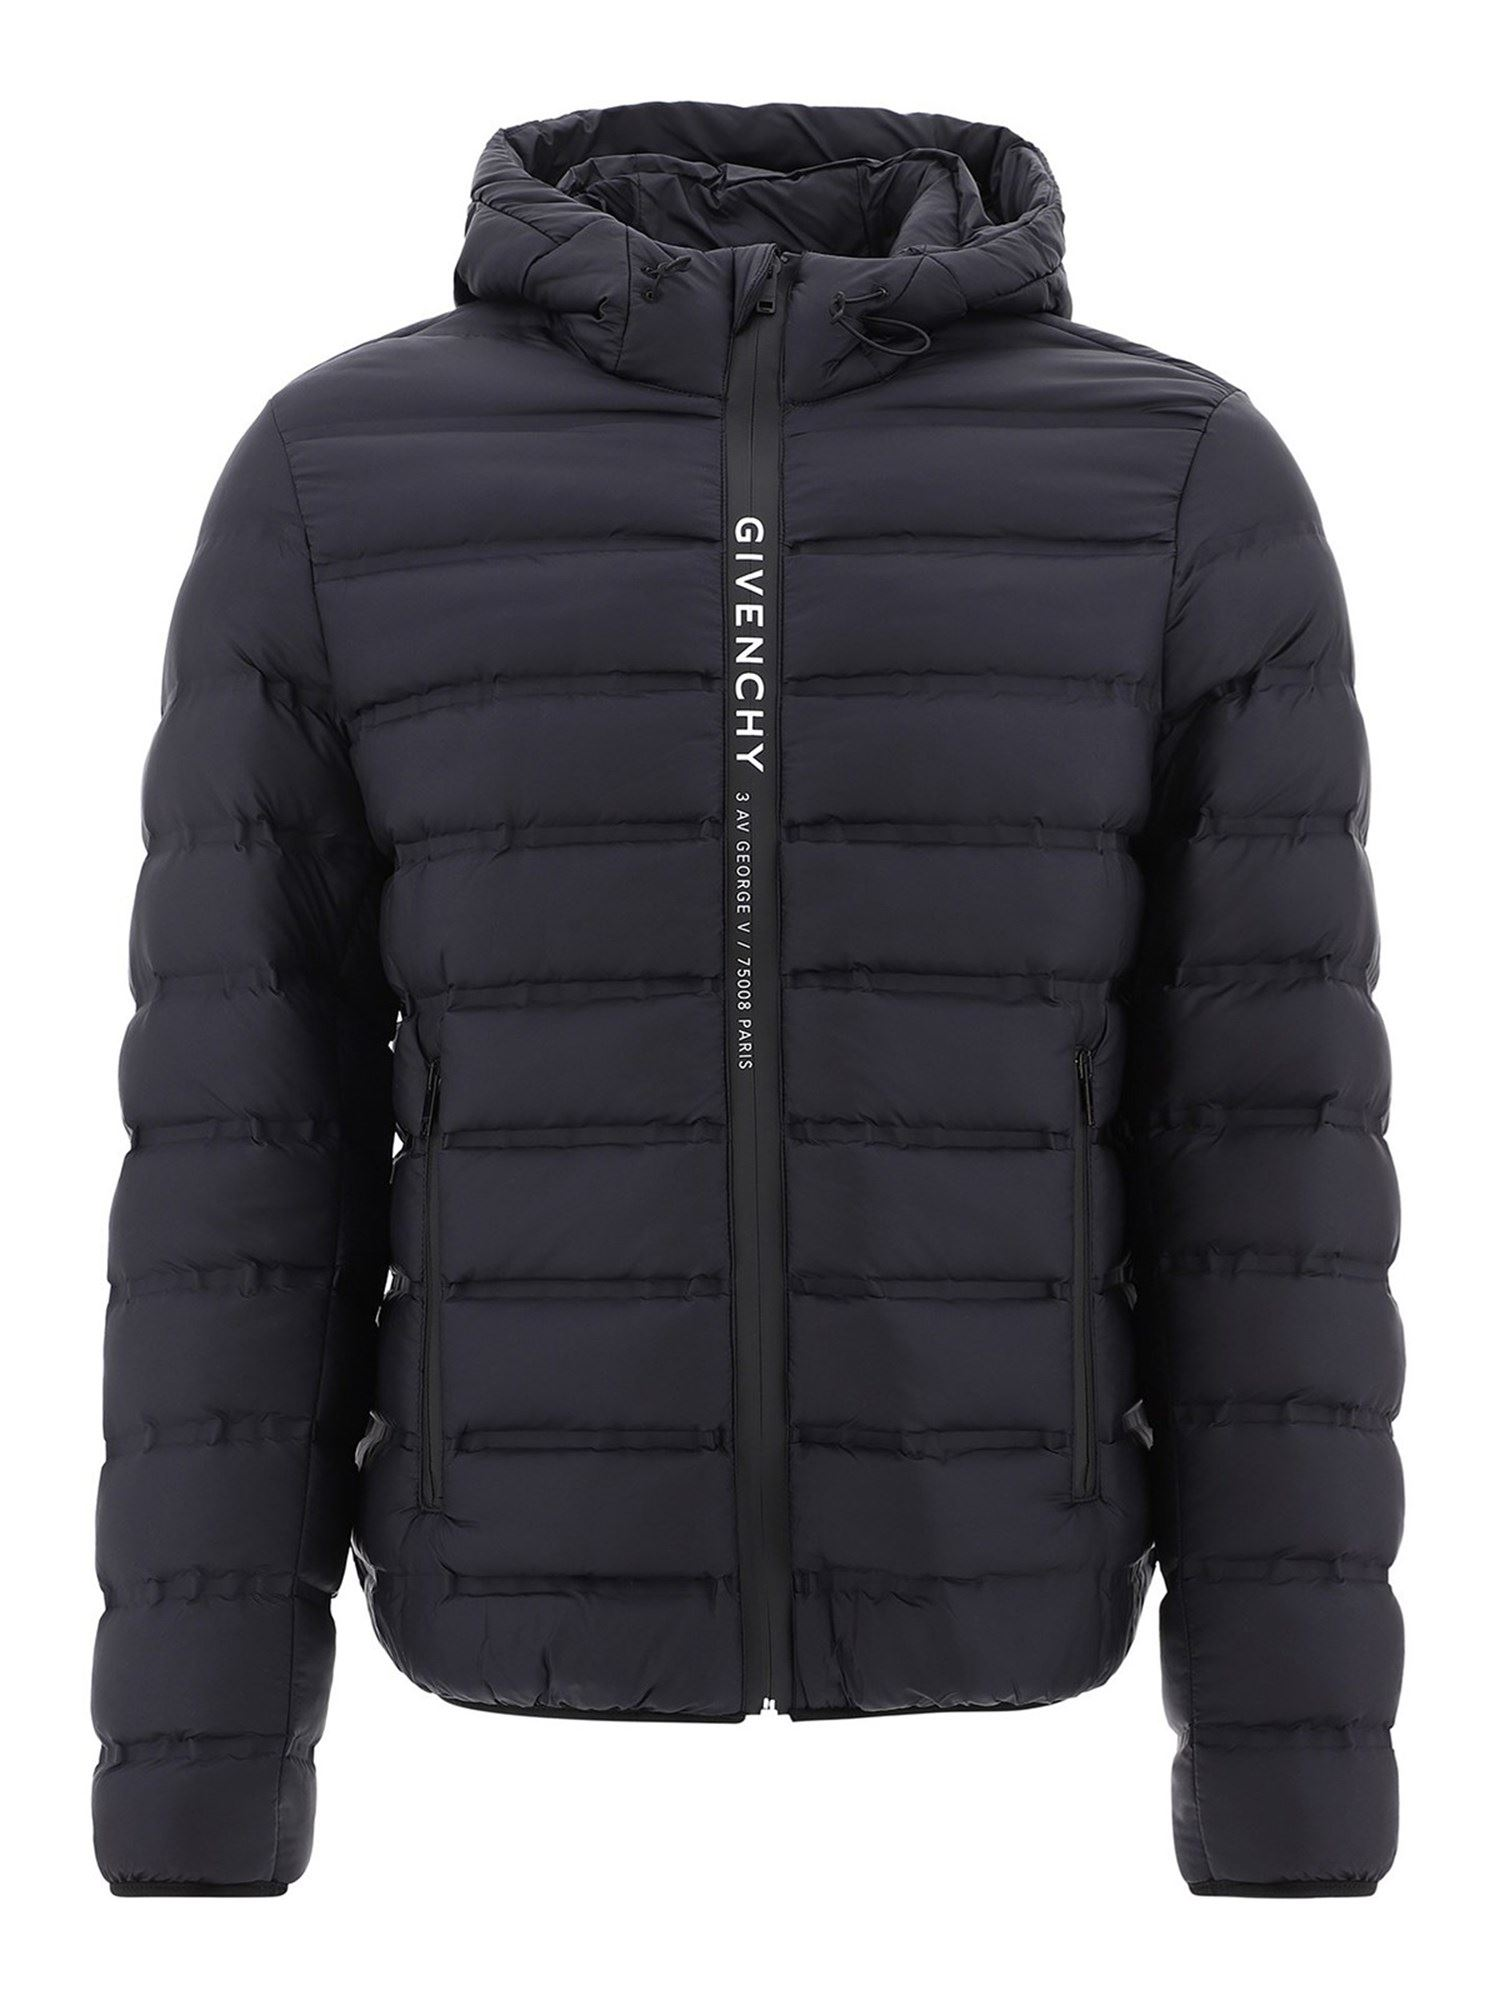 Givenchy Over coats LOGO BAND QUILTED PADDED JACKET IN BLACK